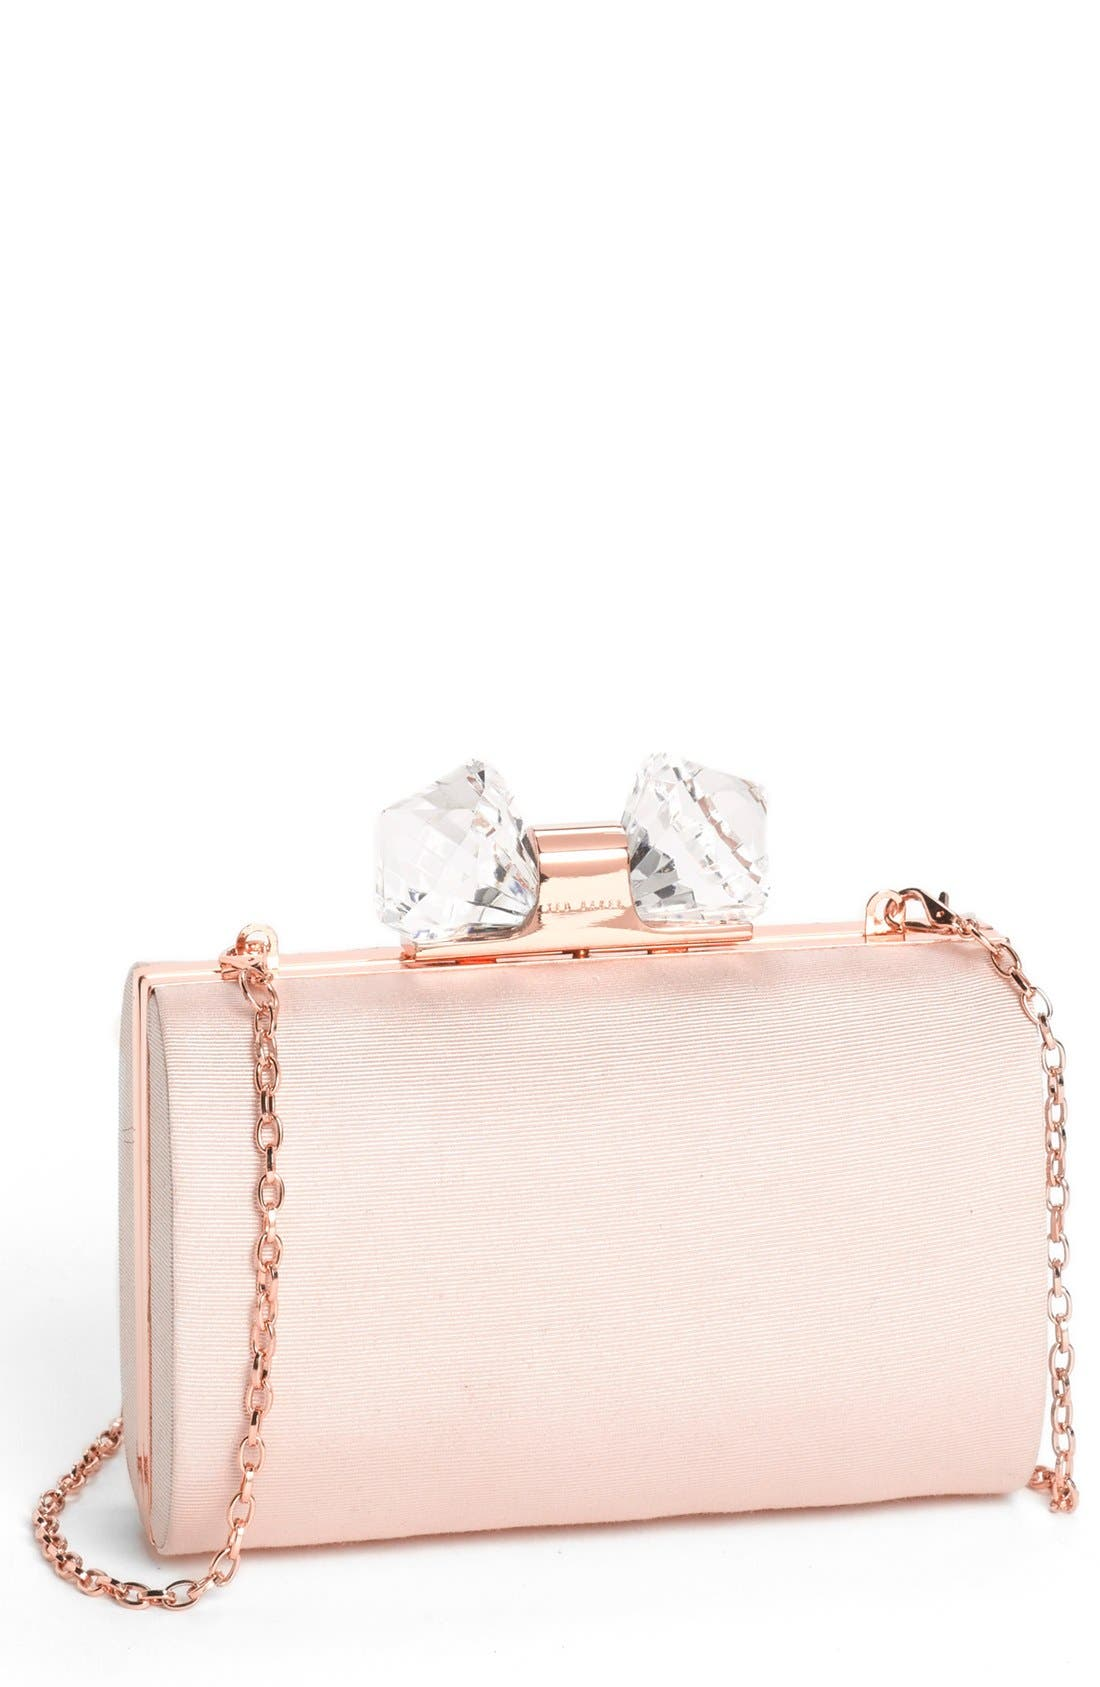 Alternate Image 1 Selected - Ted Baker London 'Holiday - Crystal' Frame Clutch